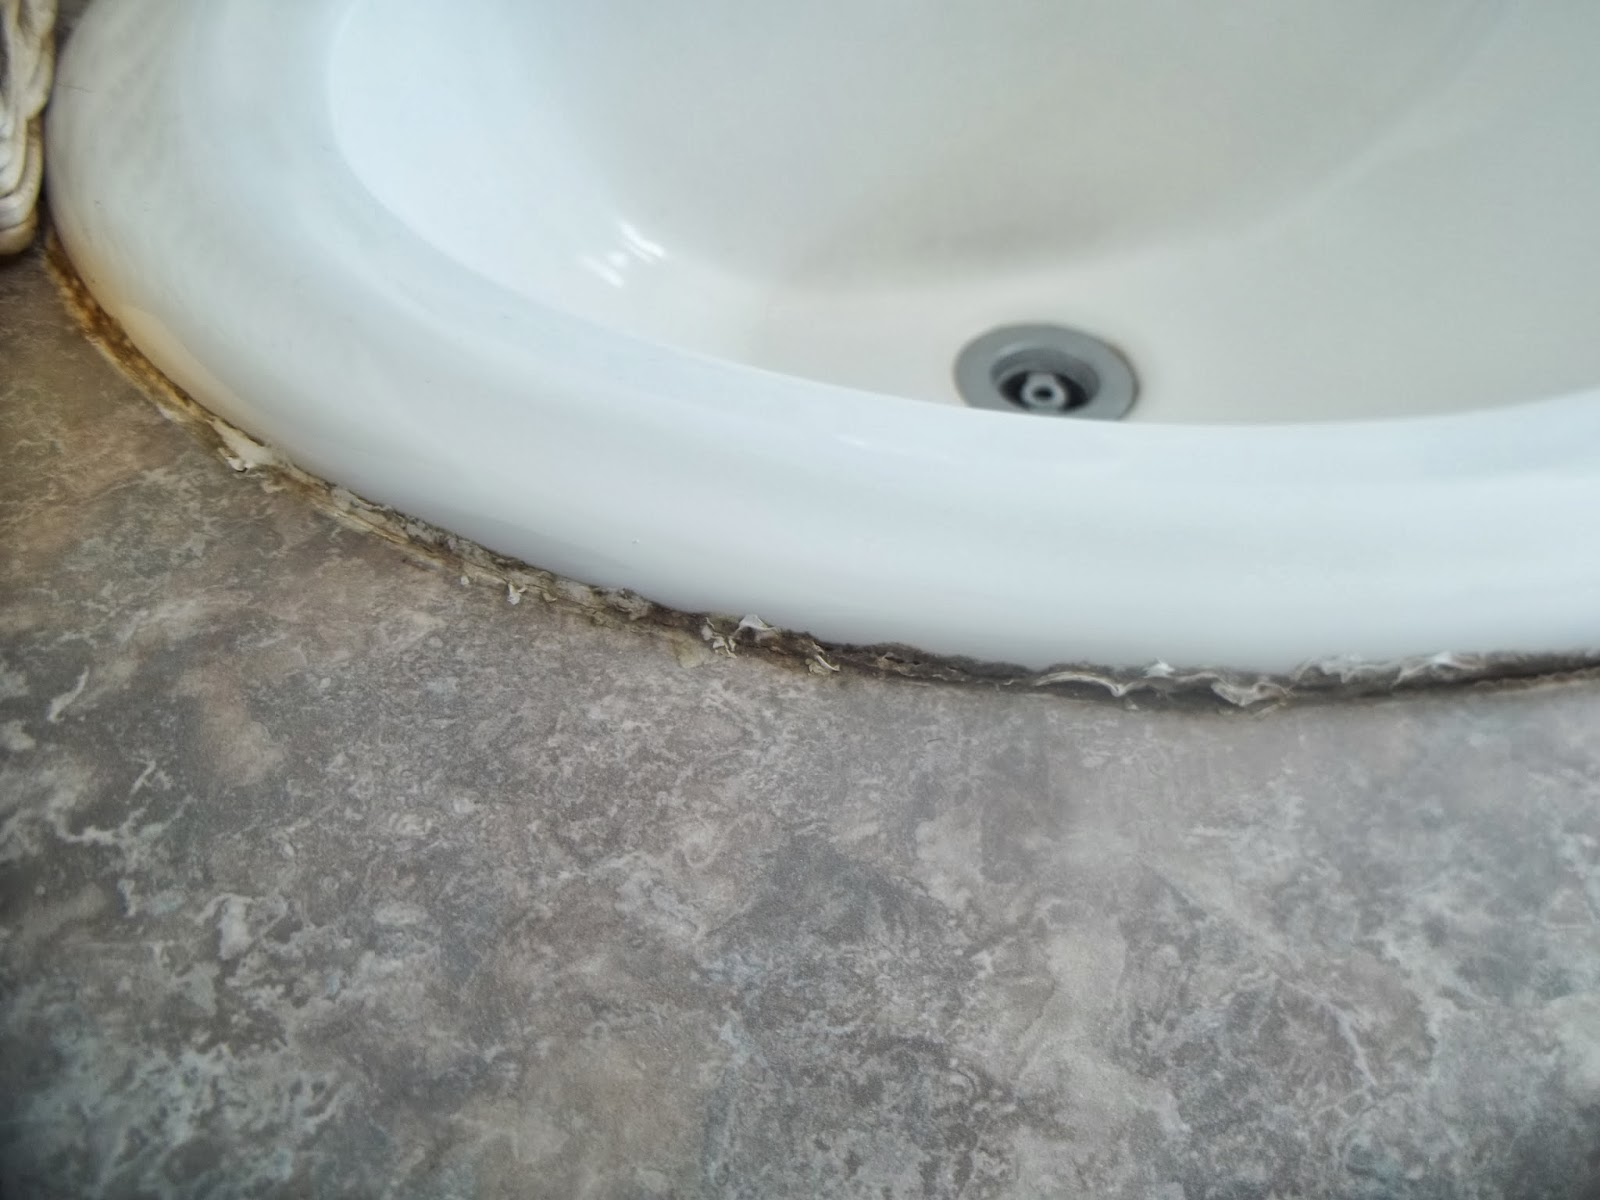 Bathroom Sink Caulk. Now With The Old Caulk Removed And The Battle ...